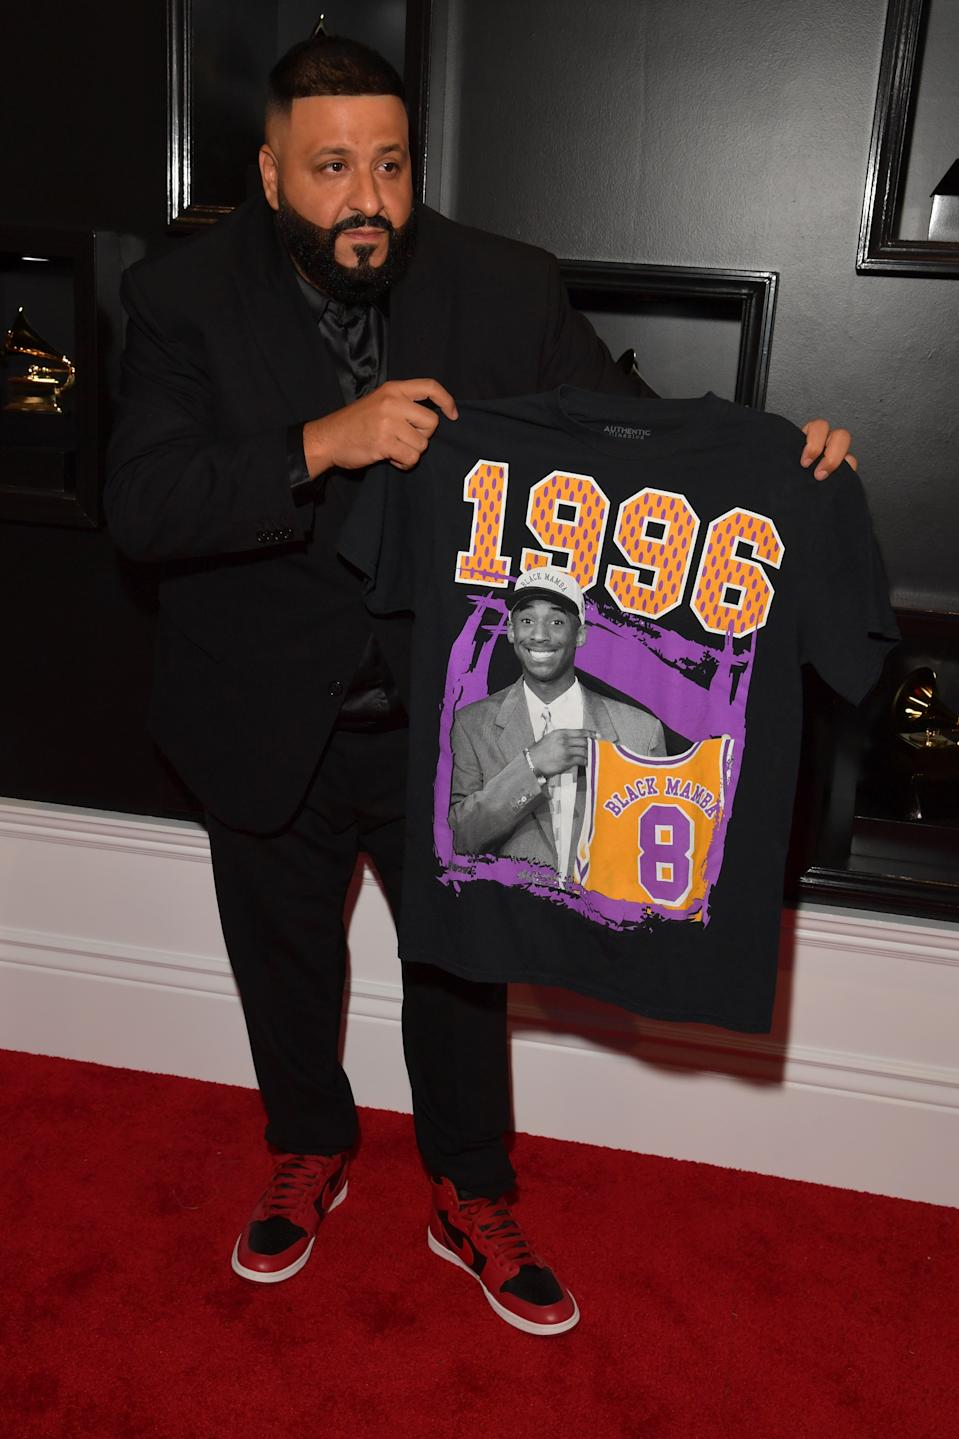 """The """"Higher"""" rapper was one of several stars to pay tribute to Kobe Bryant on the red carpet. Hours before the Grammys broadcast, it was announced that Bryant and his 13-year-old daughter Gianna were killed in a helicopter crash in Calabasas, Calif. Khaled carried a T-shirt of Bryant, posing with a Lakers jersey emblazoned with his nickname, """"Black Mamba."""""""